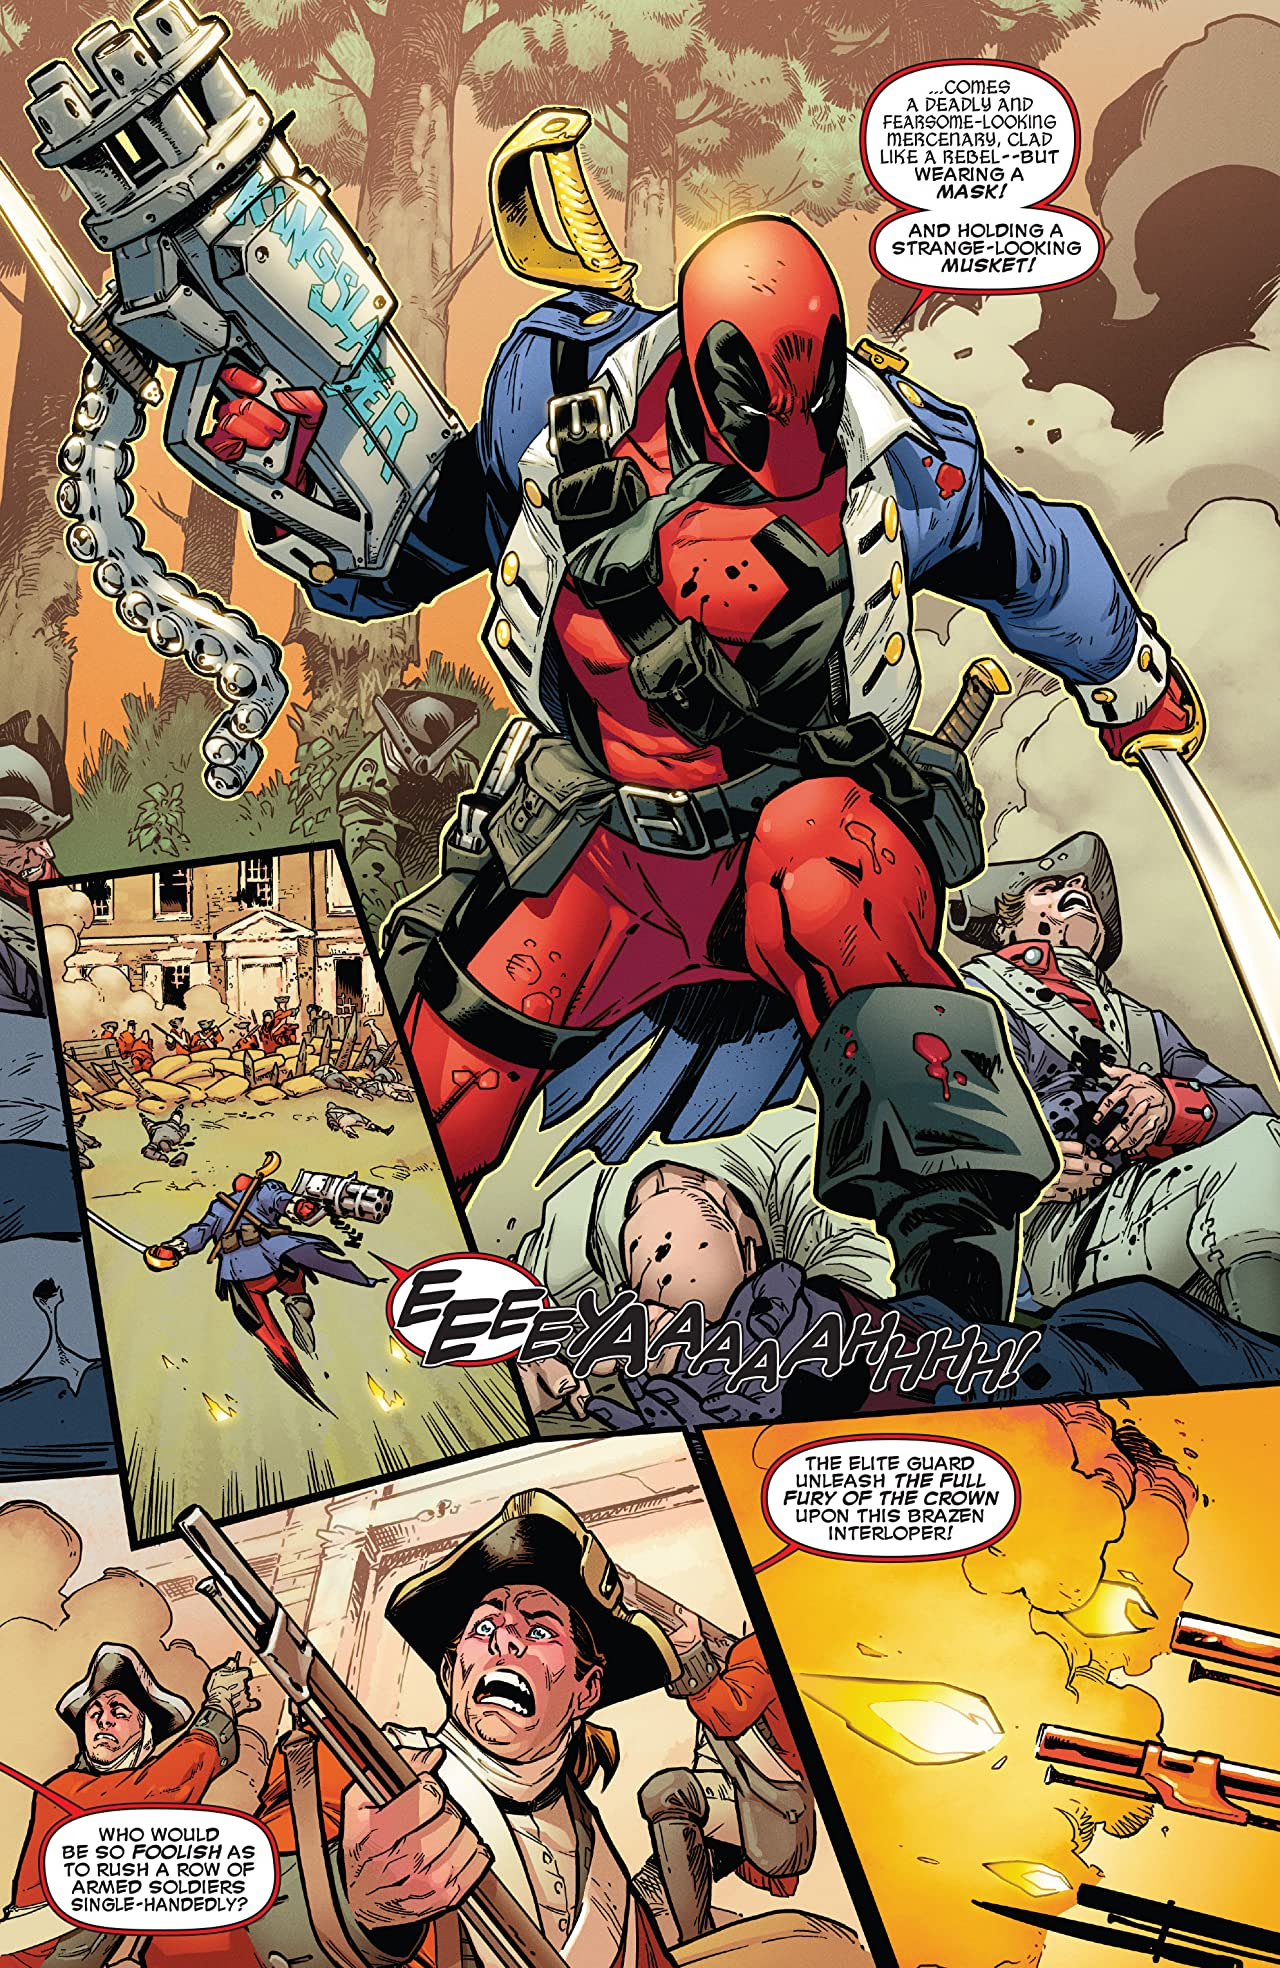 Deadpool vs. X-Force #1 (of 4)